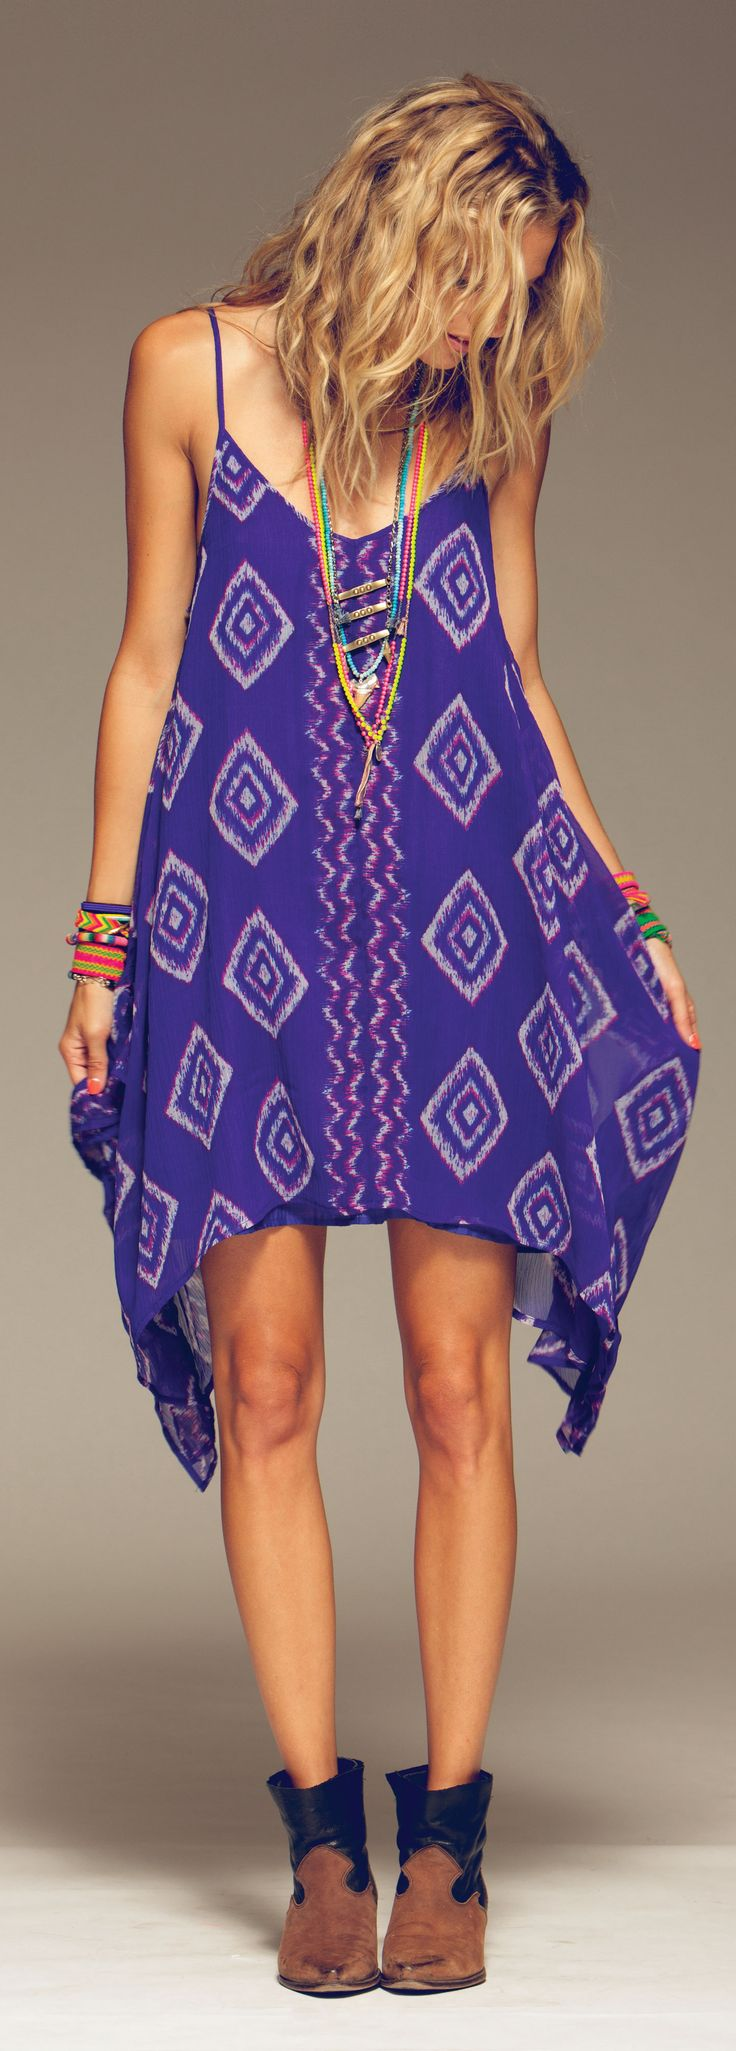 Totally... I want it.  Lovely Billabong Rapid Waves dress paired with fantastic cowboy-esque ankle boots. Cute little surf-hippy ensemble.